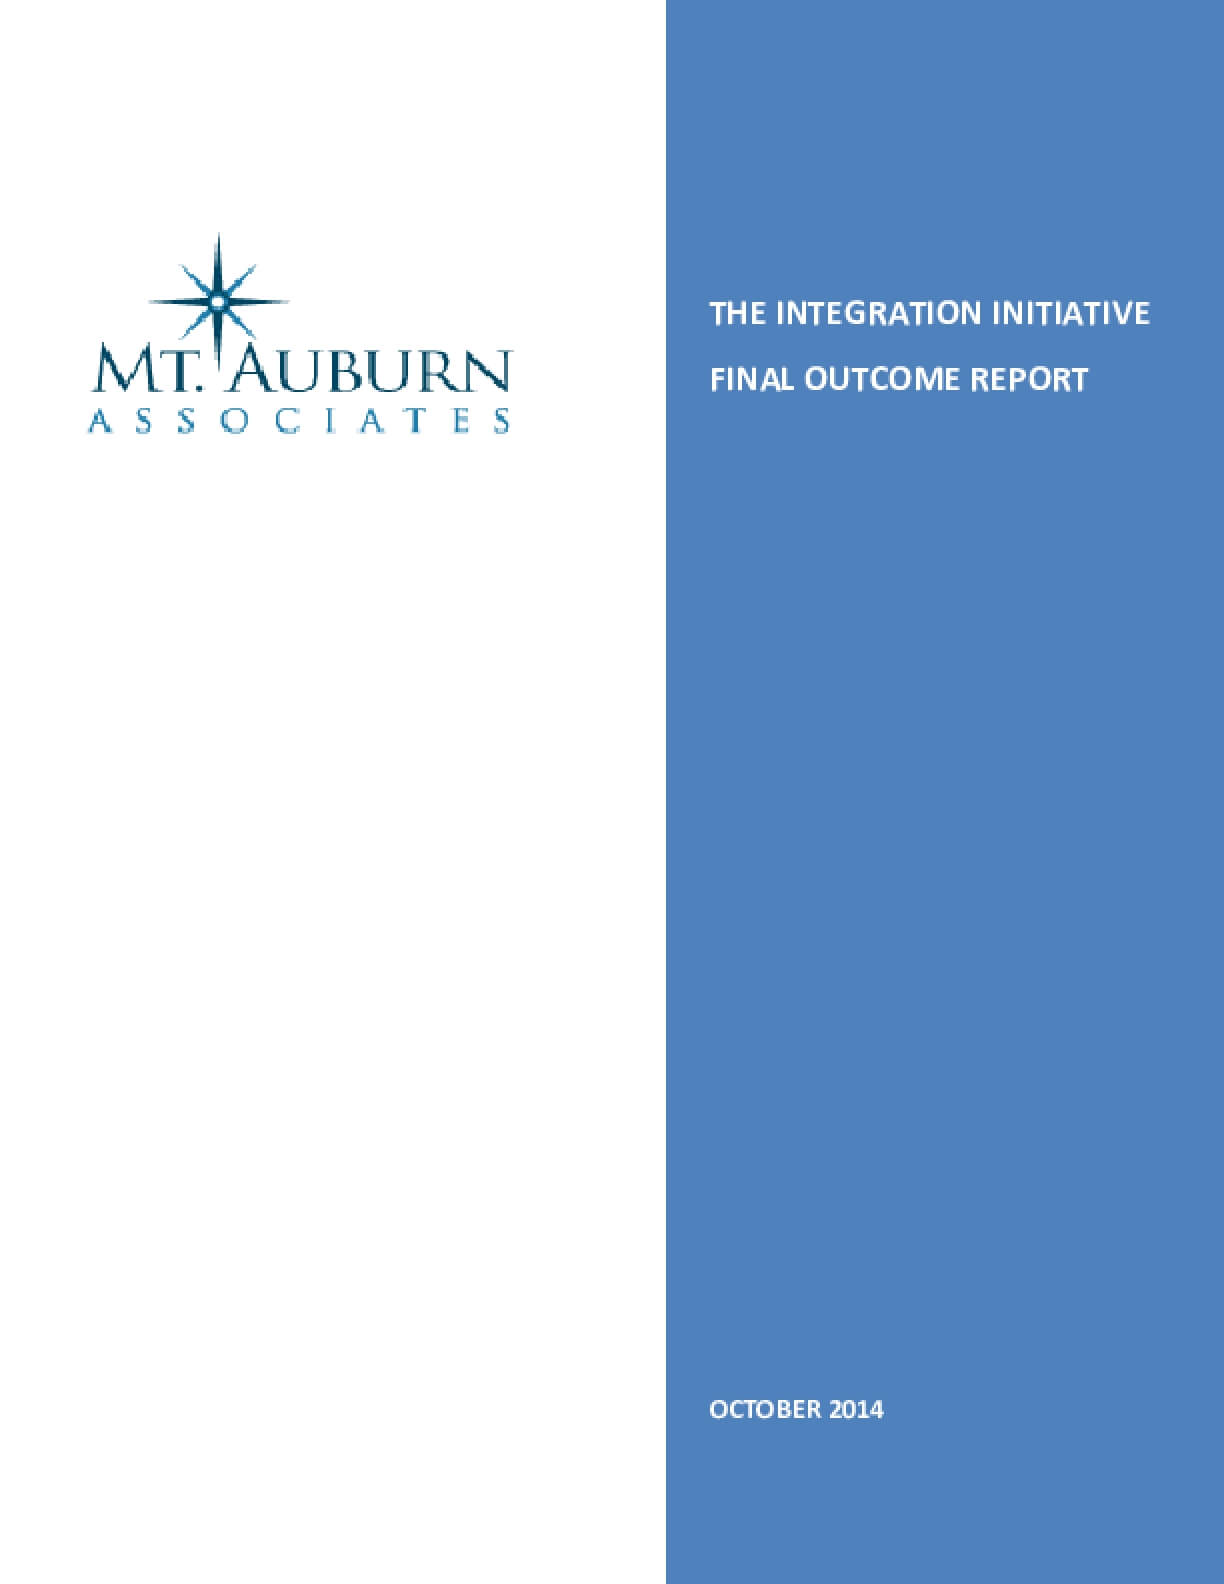 The Integration Initiative Final Outcome Report